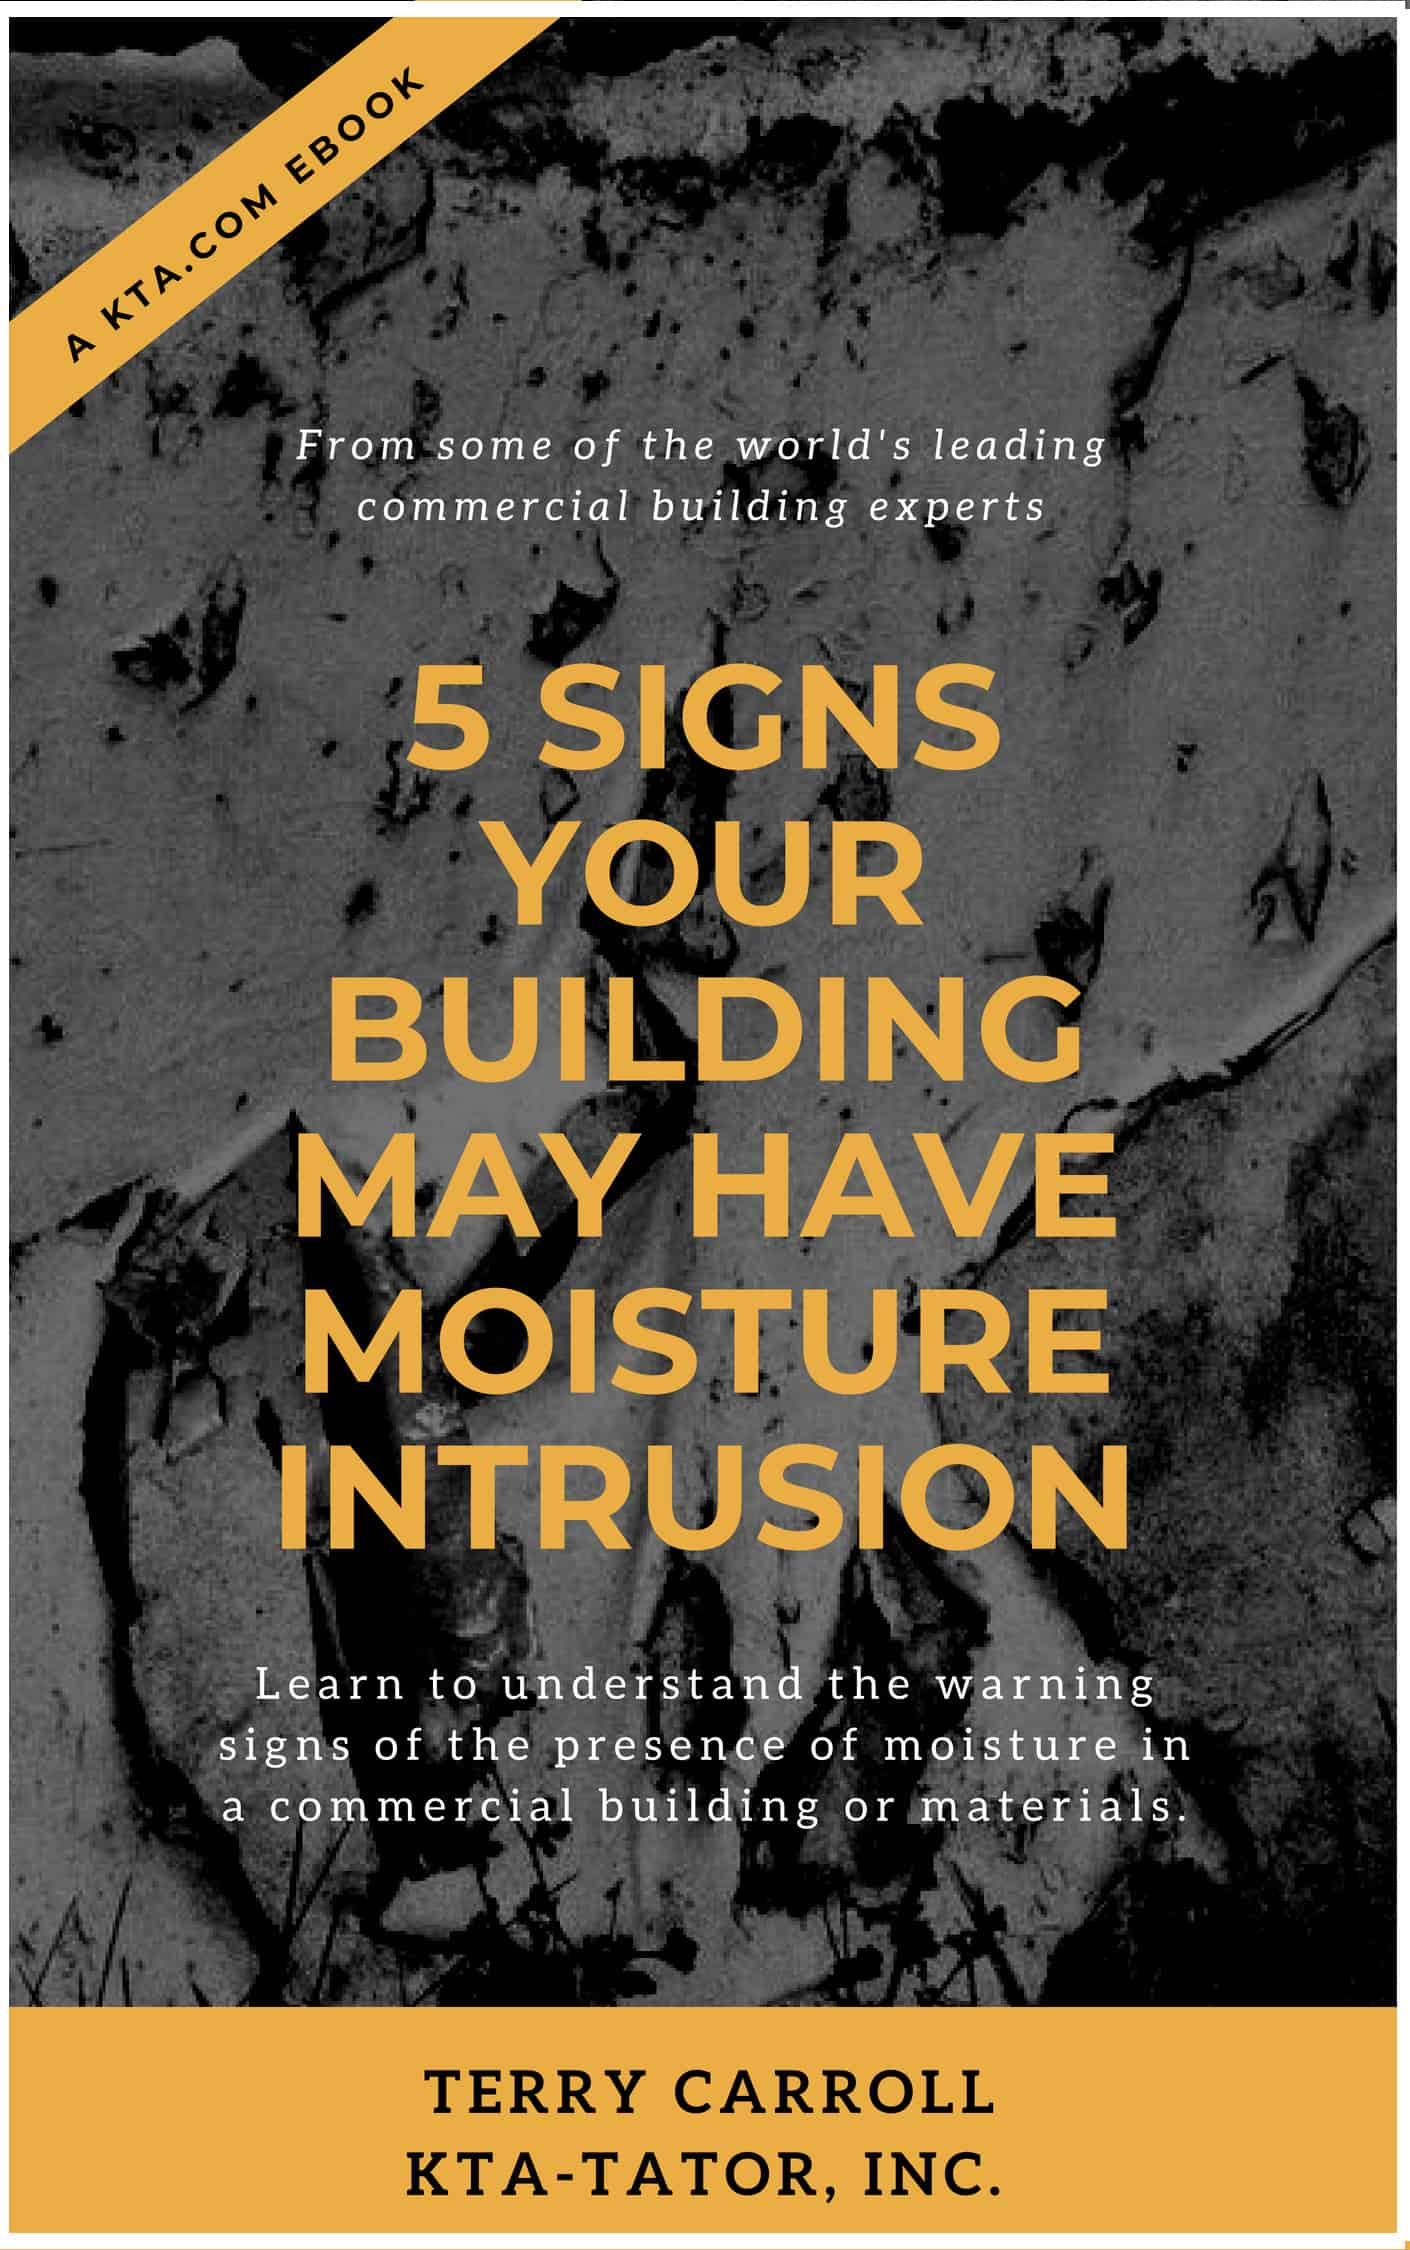 moisture intrusion issues